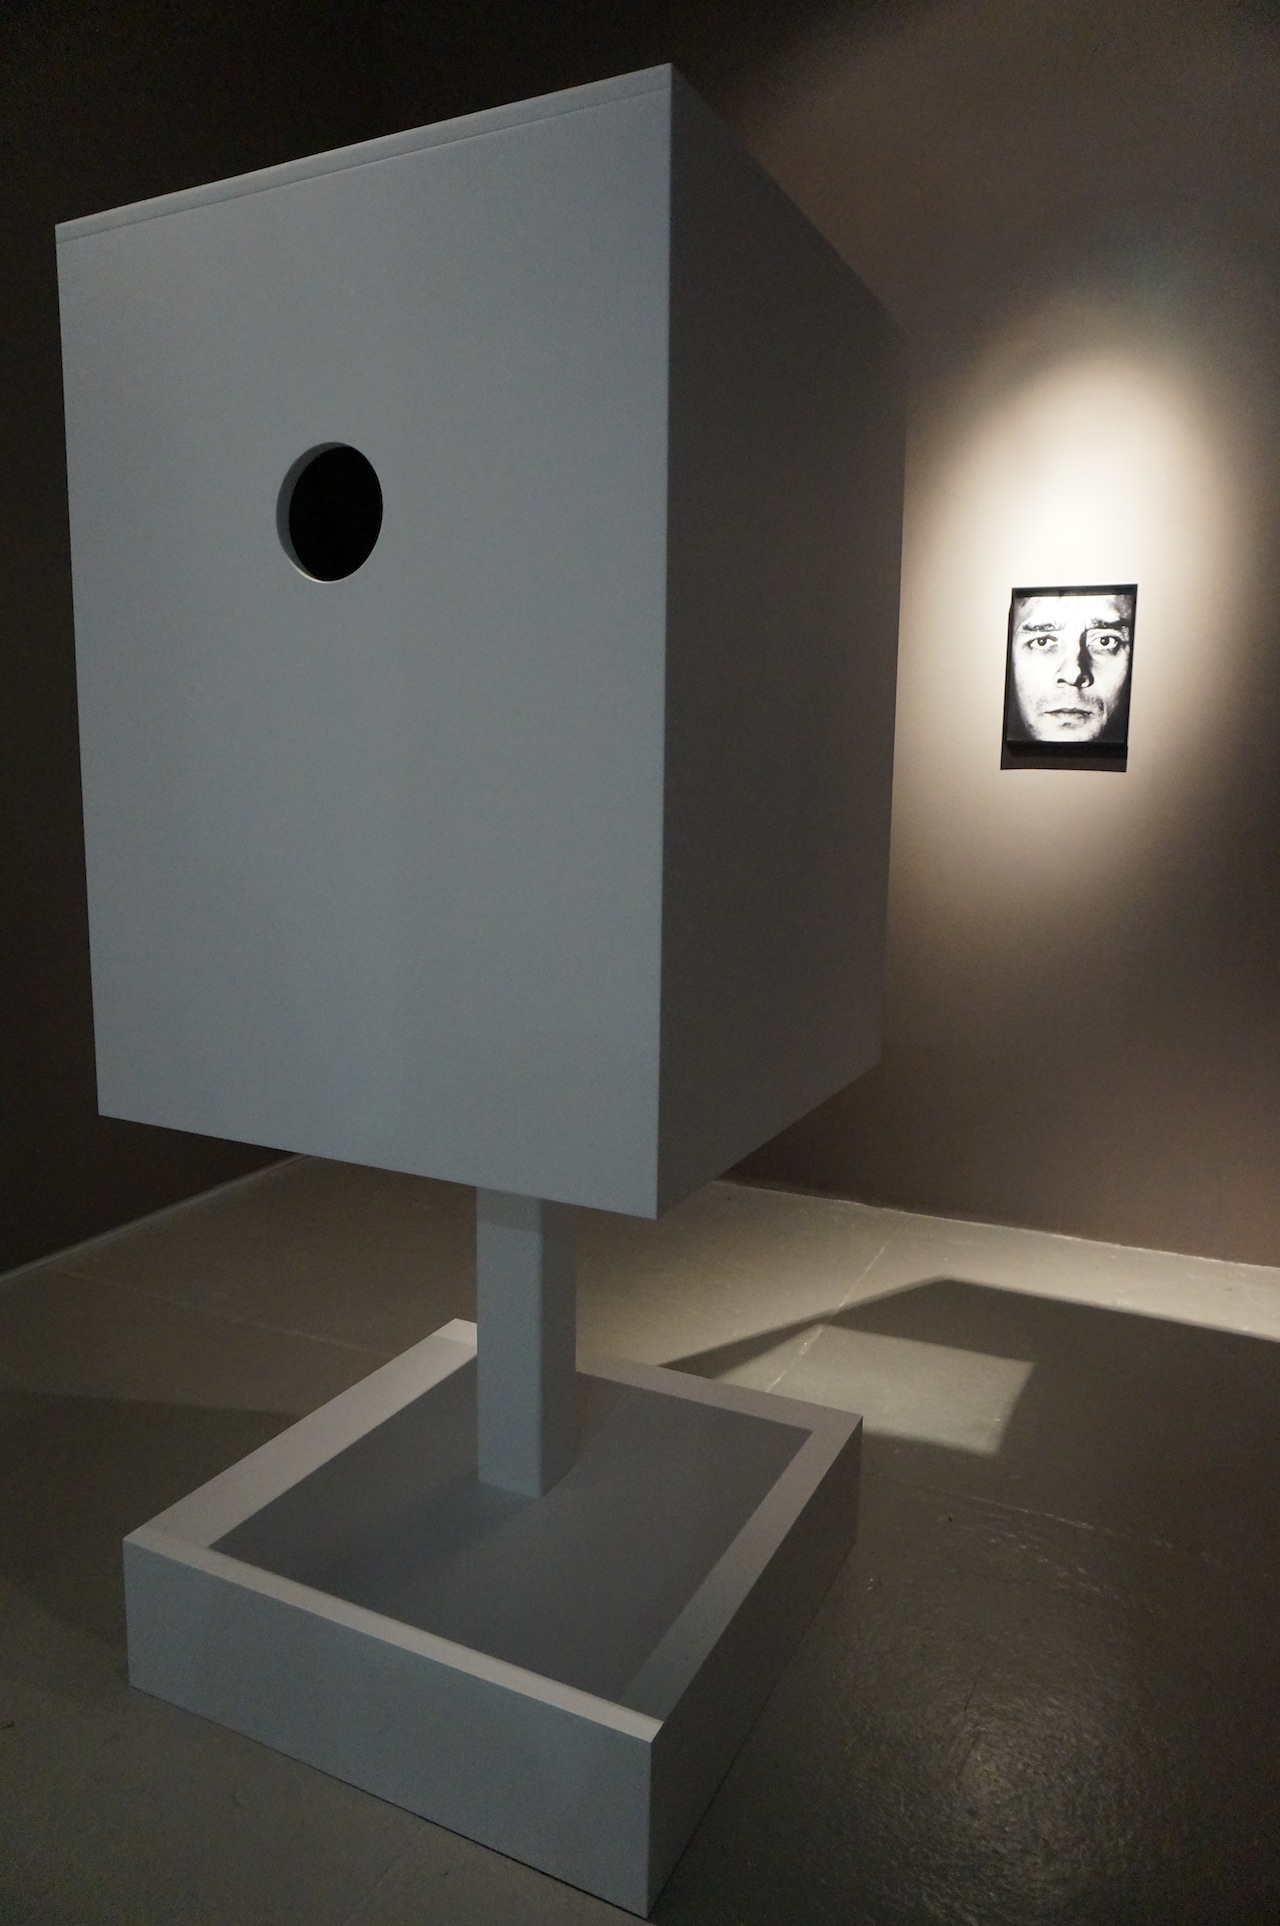 """Dominique Lévy has fabricated Yves Klein's """"Sculpture tactile,"""" which he conceived in 1957 with a prototype but never made. You're supposed to stick your arm in that hole."""